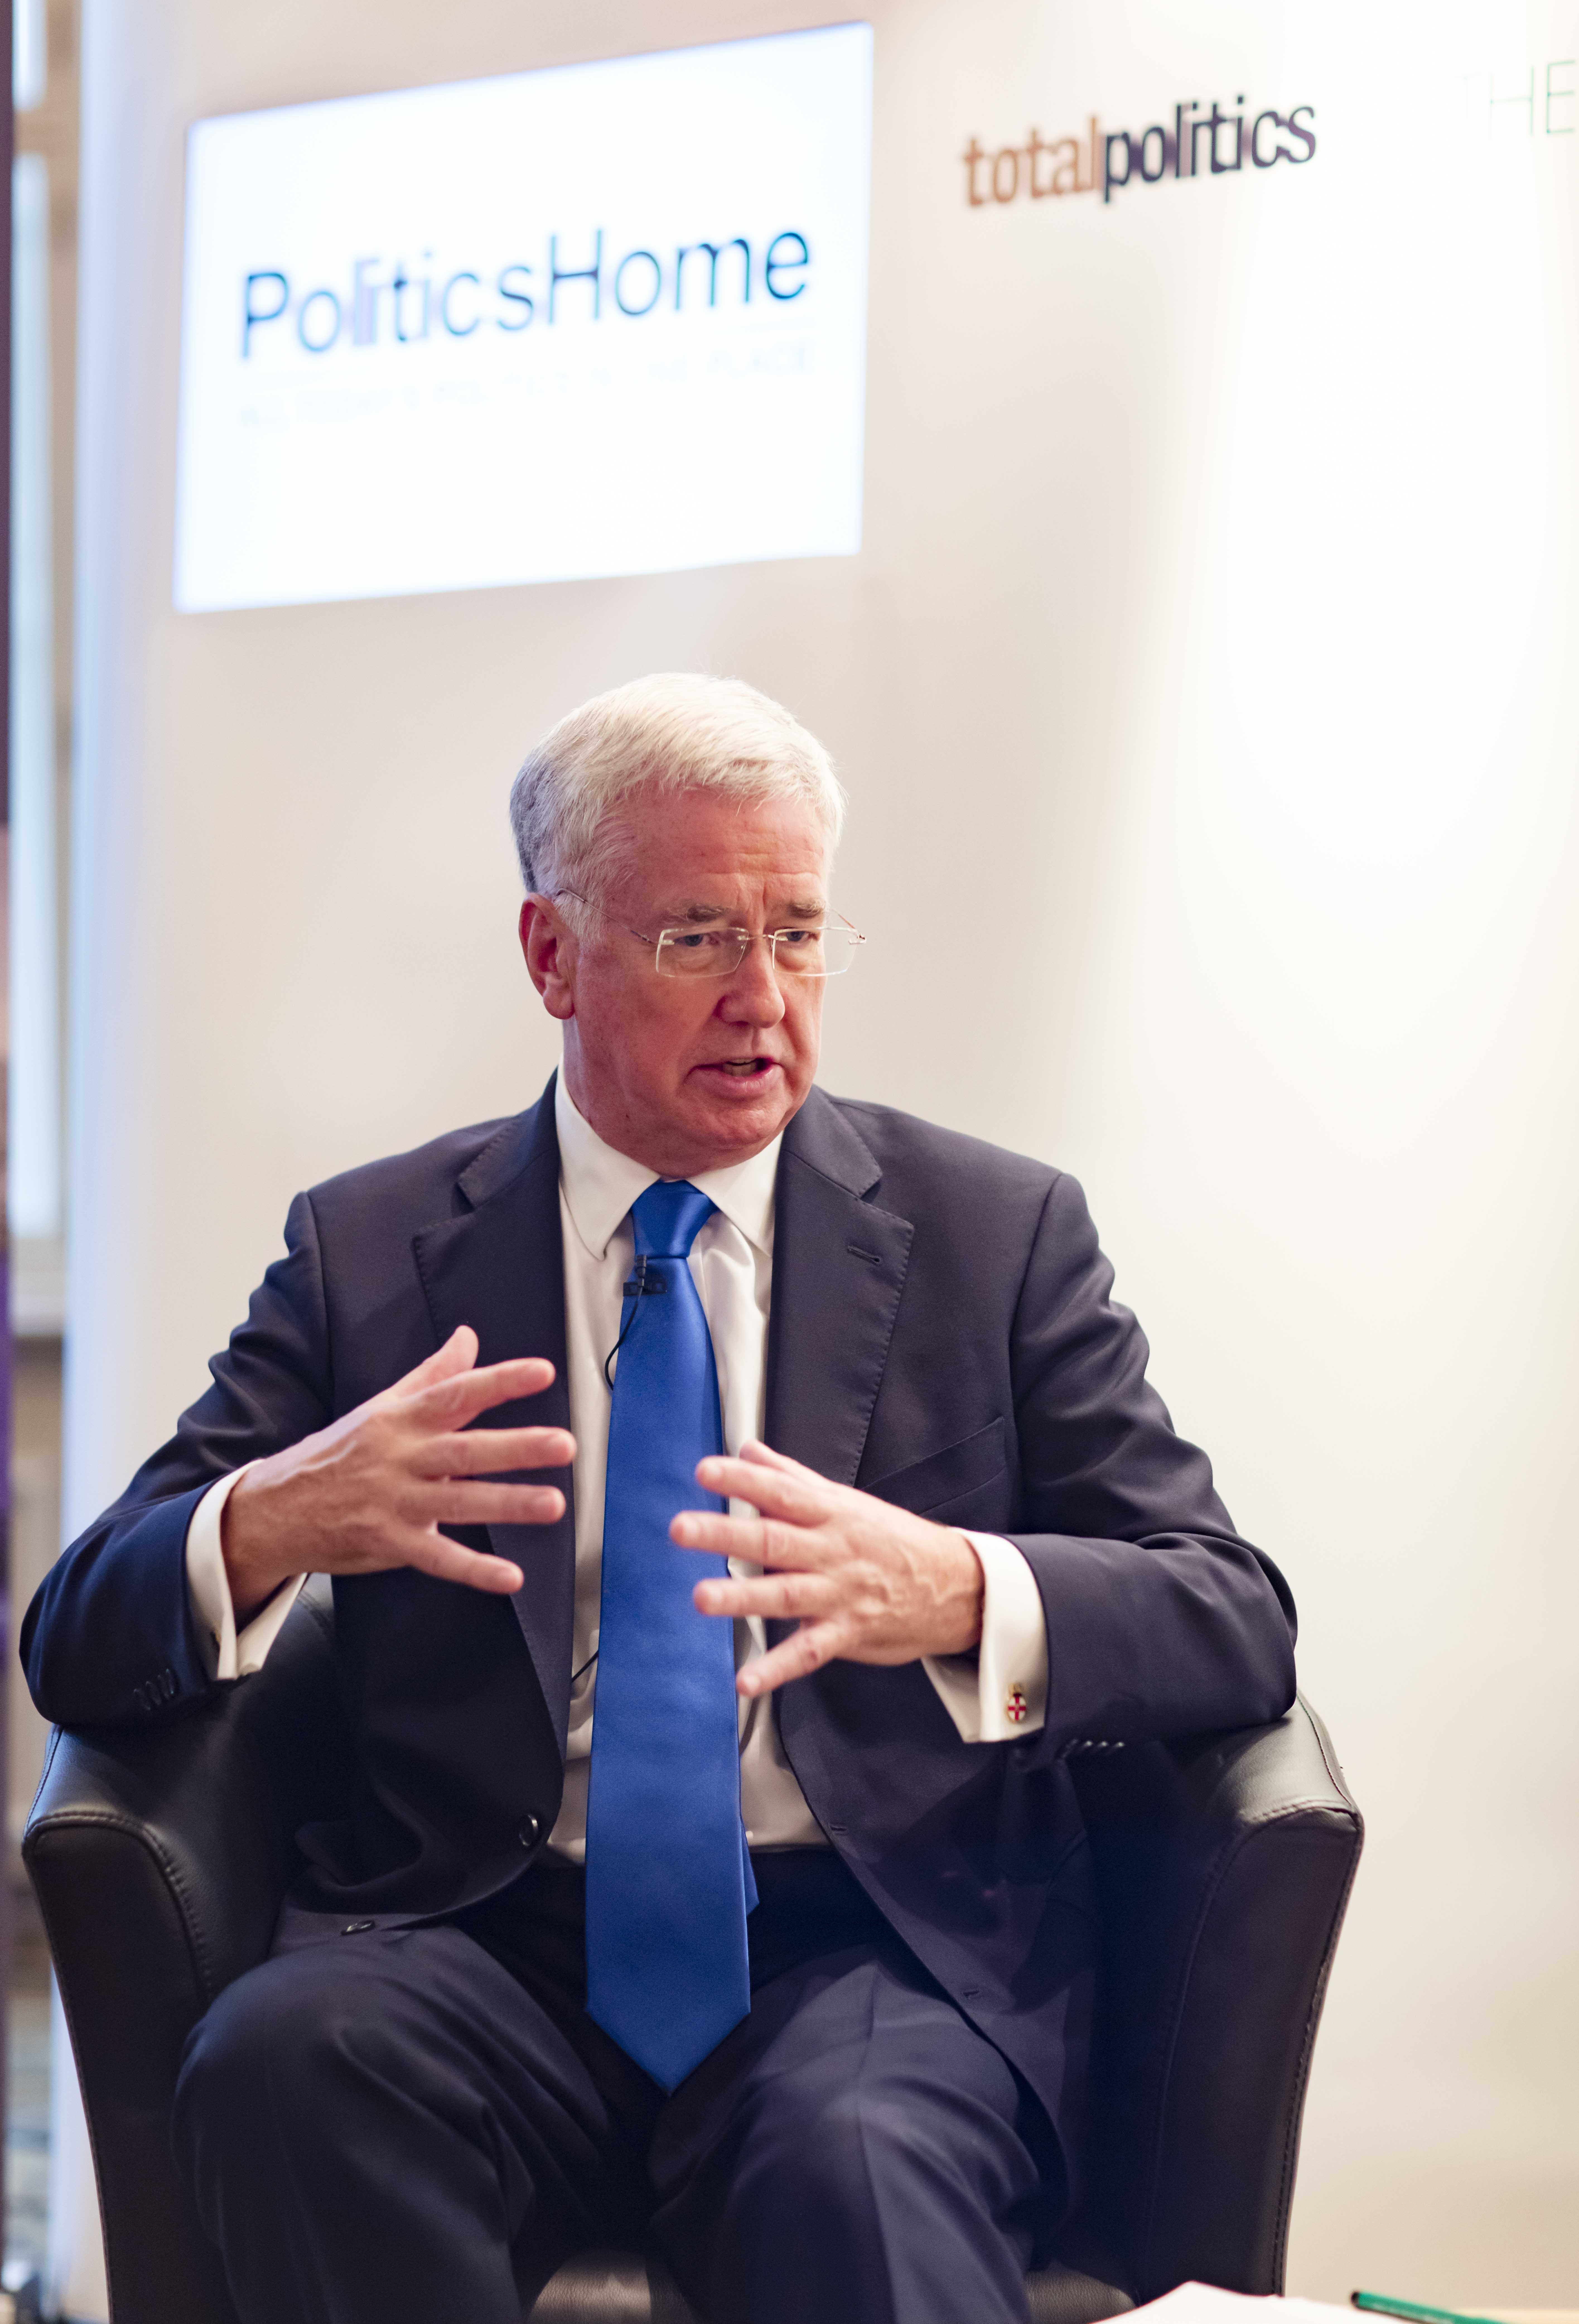 Rt Hon Sir Michael Fallon MP speaking at the BAE Systems fringe event